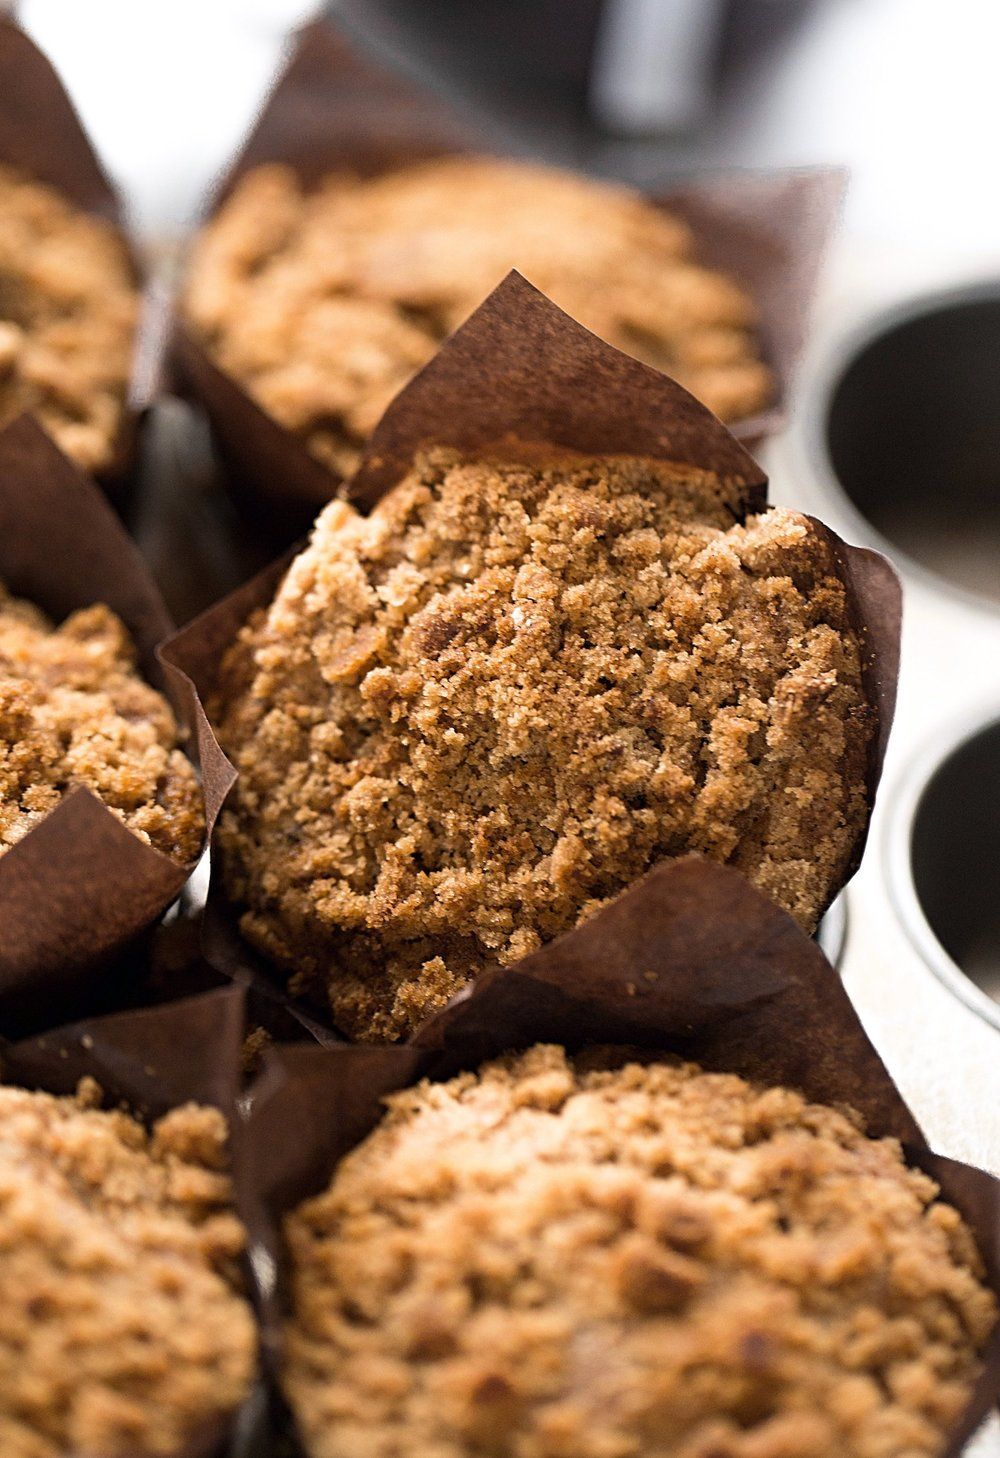 Whole Wheat Pecan Crumb Muffins: soft, moist, fluffy, easy, 100% whole-wheat muffins filled with toasted pecan bits and topped with a tasty crumble. | TrufflesandTrends.com